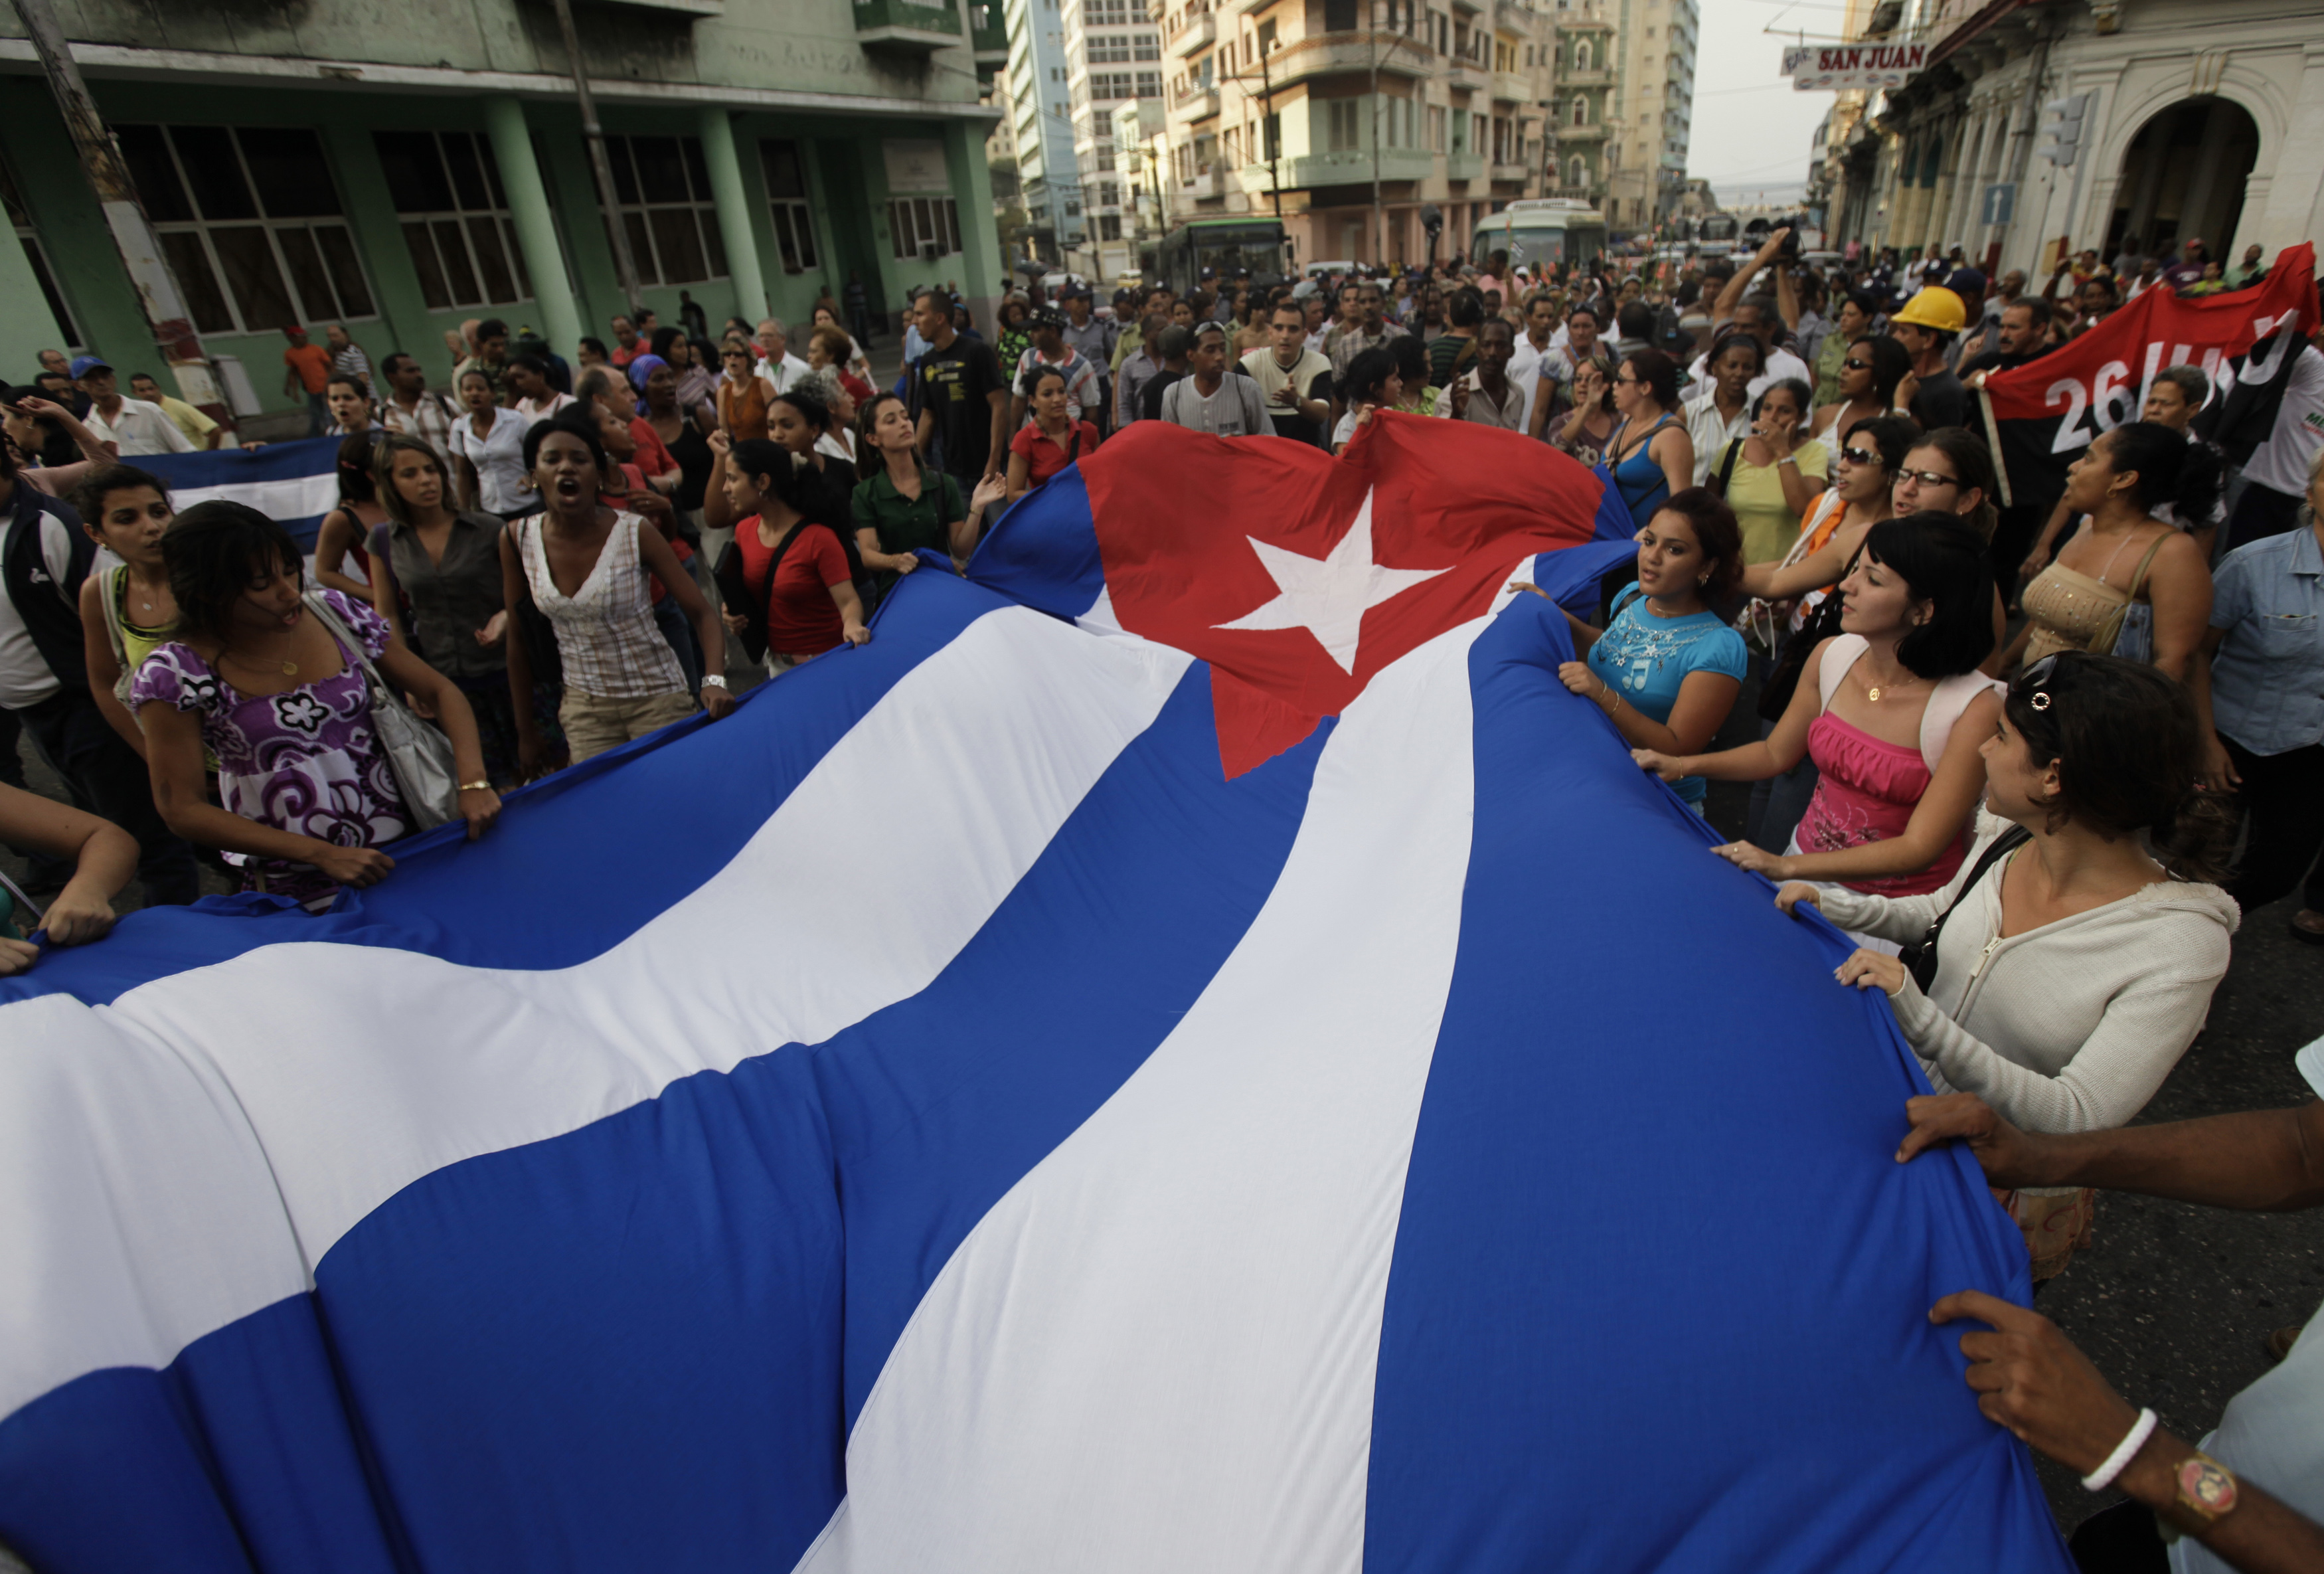 Cuba blocks access to Facebook and Telegram in response to protests